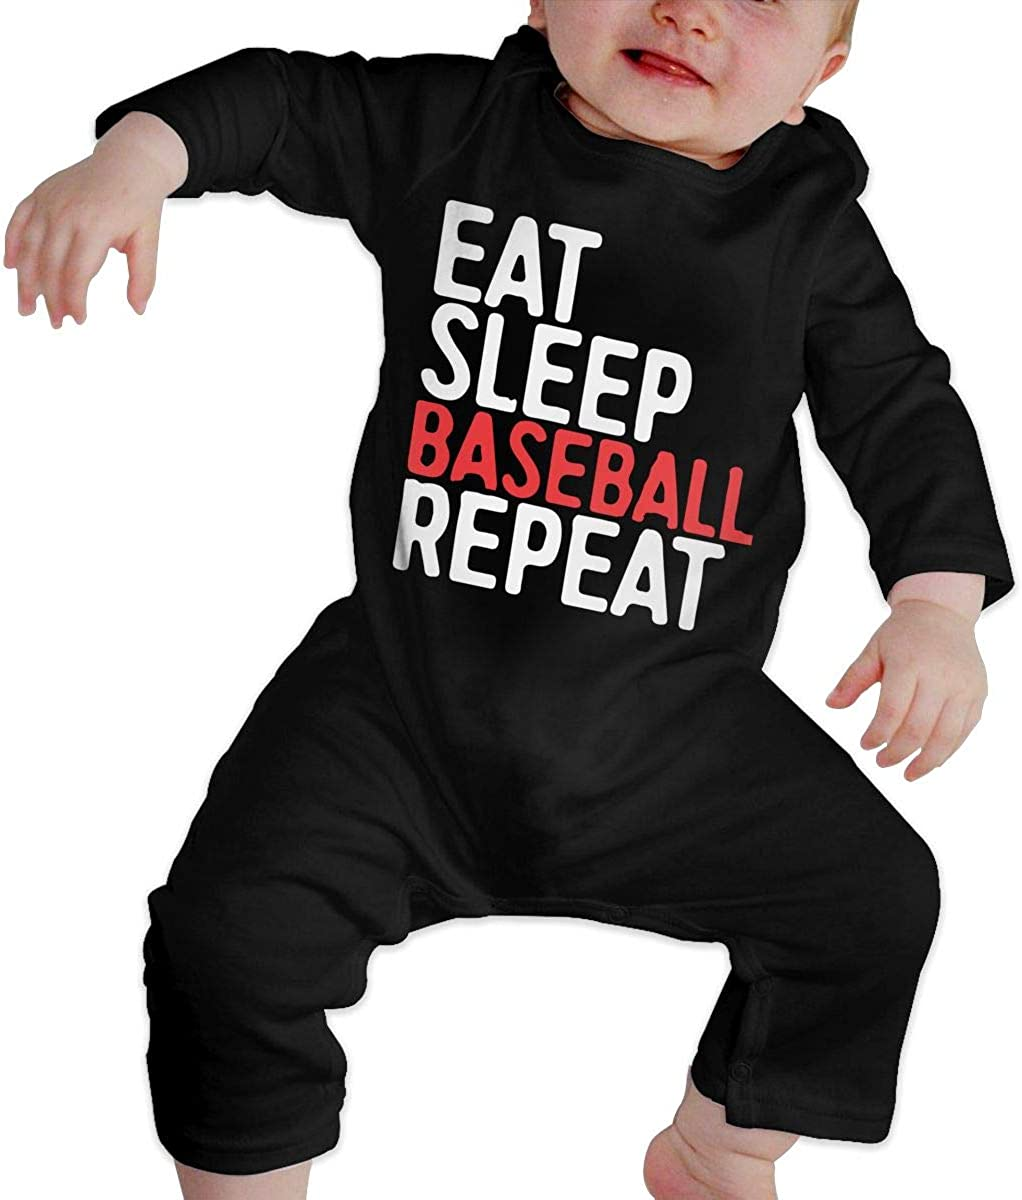 Eat Sleep Baseball Repeat Organic One-Piece Bodysuits Coverall Outfits BKNGDG8Q Baby Boys Romper Jumpsuit